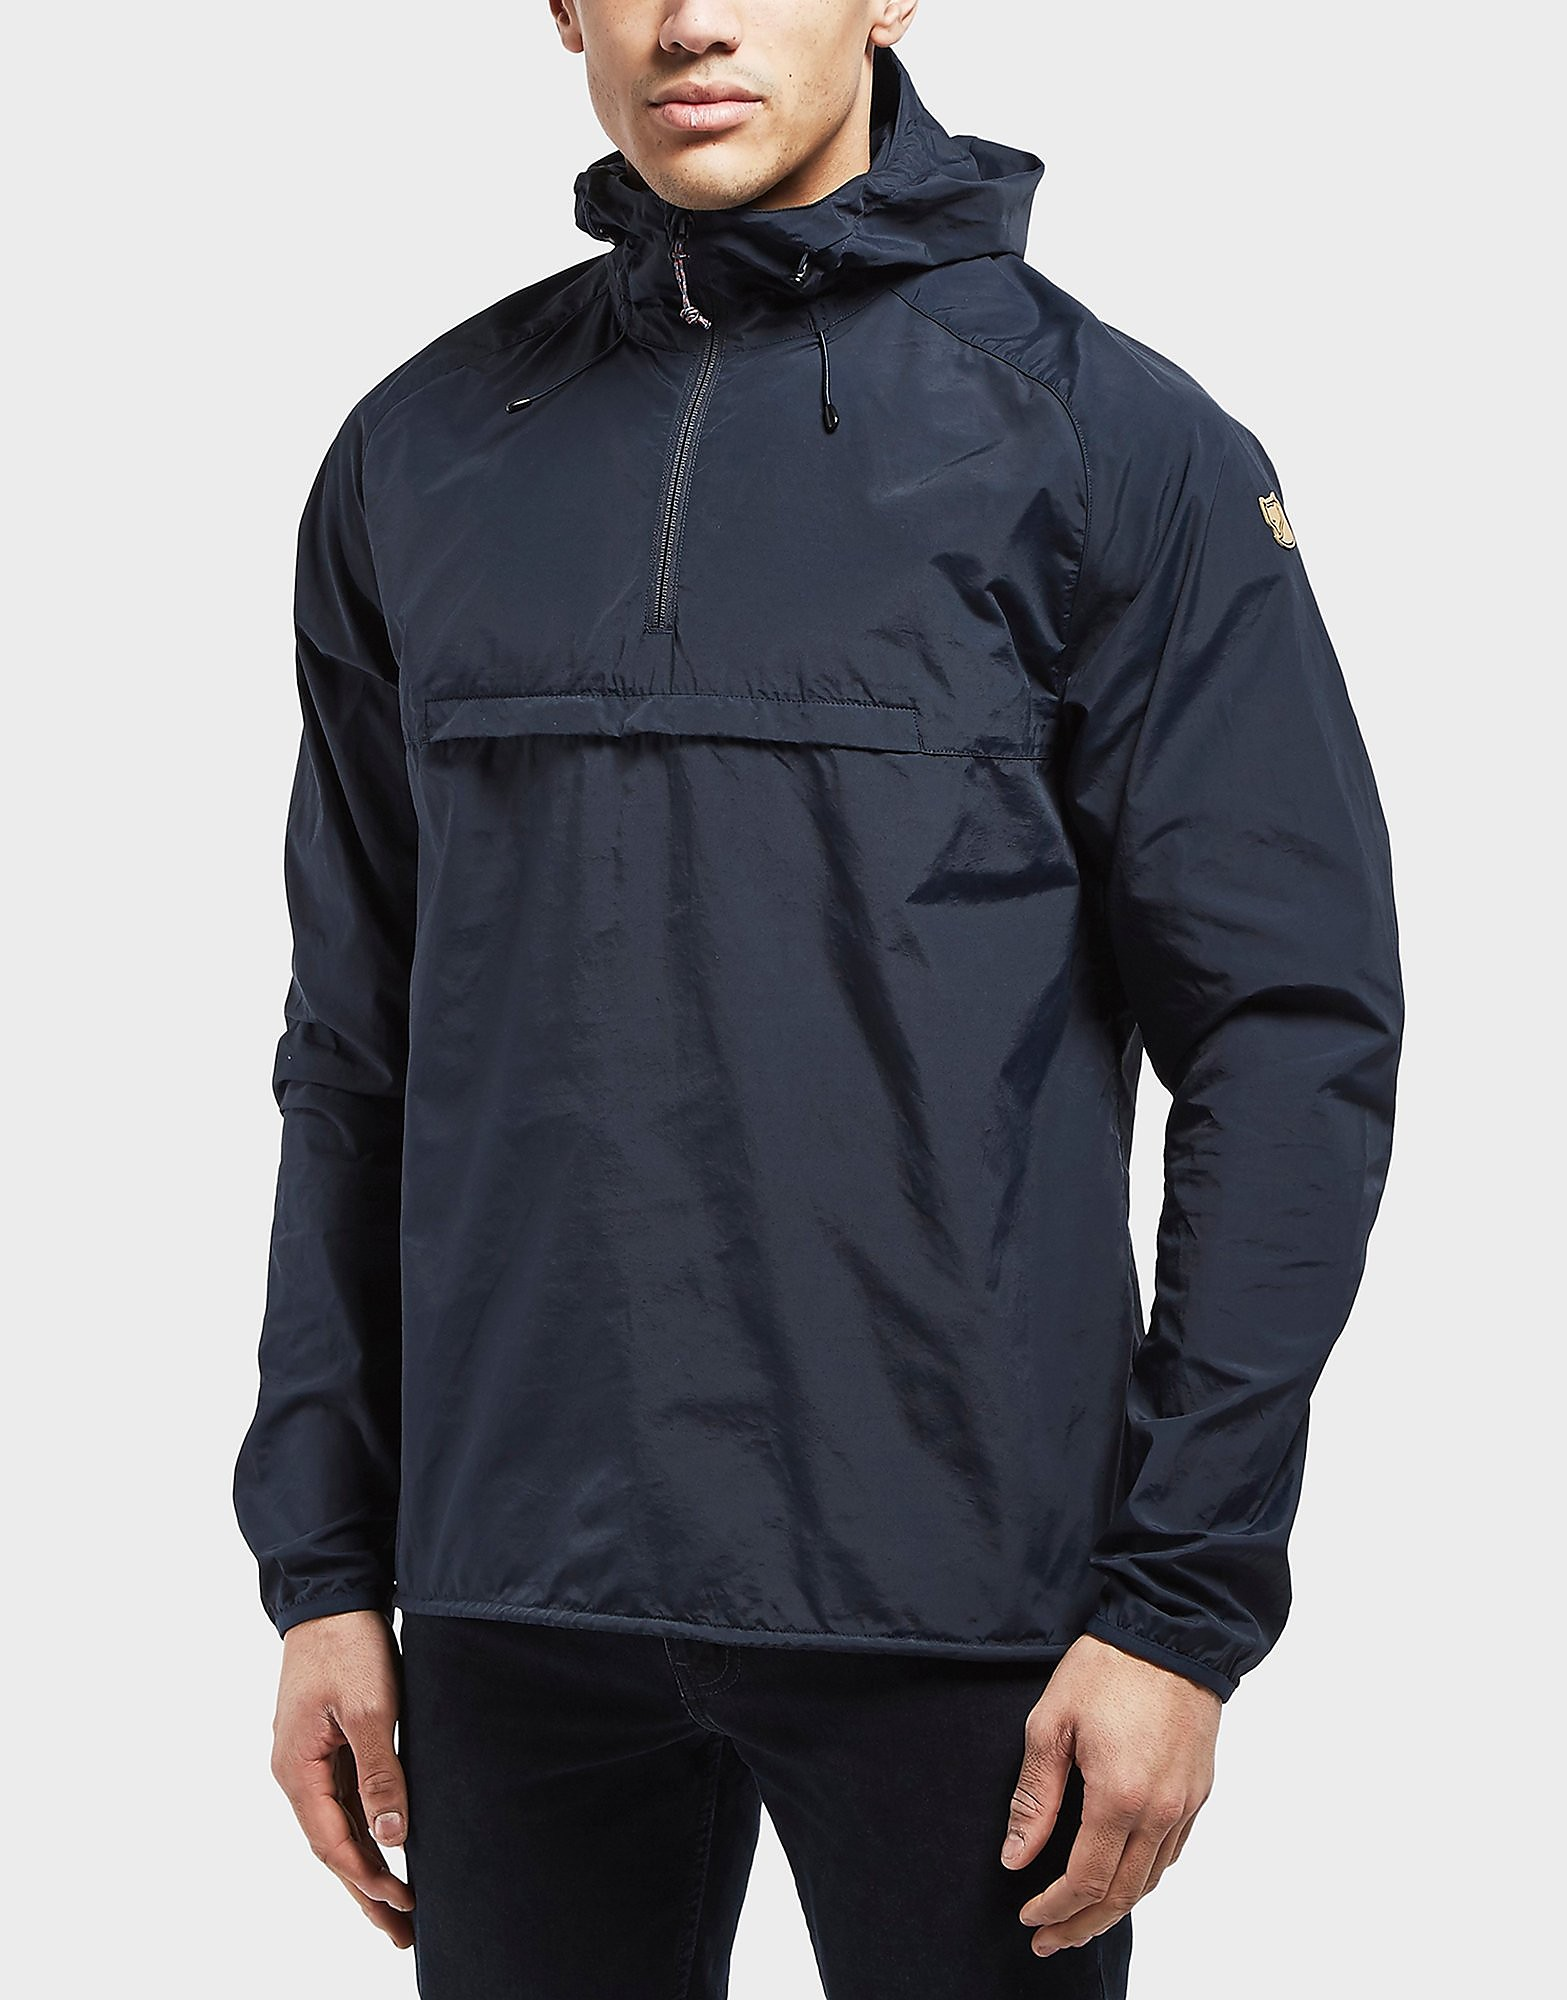 Fjallraven High Coast Lightweight Jacket